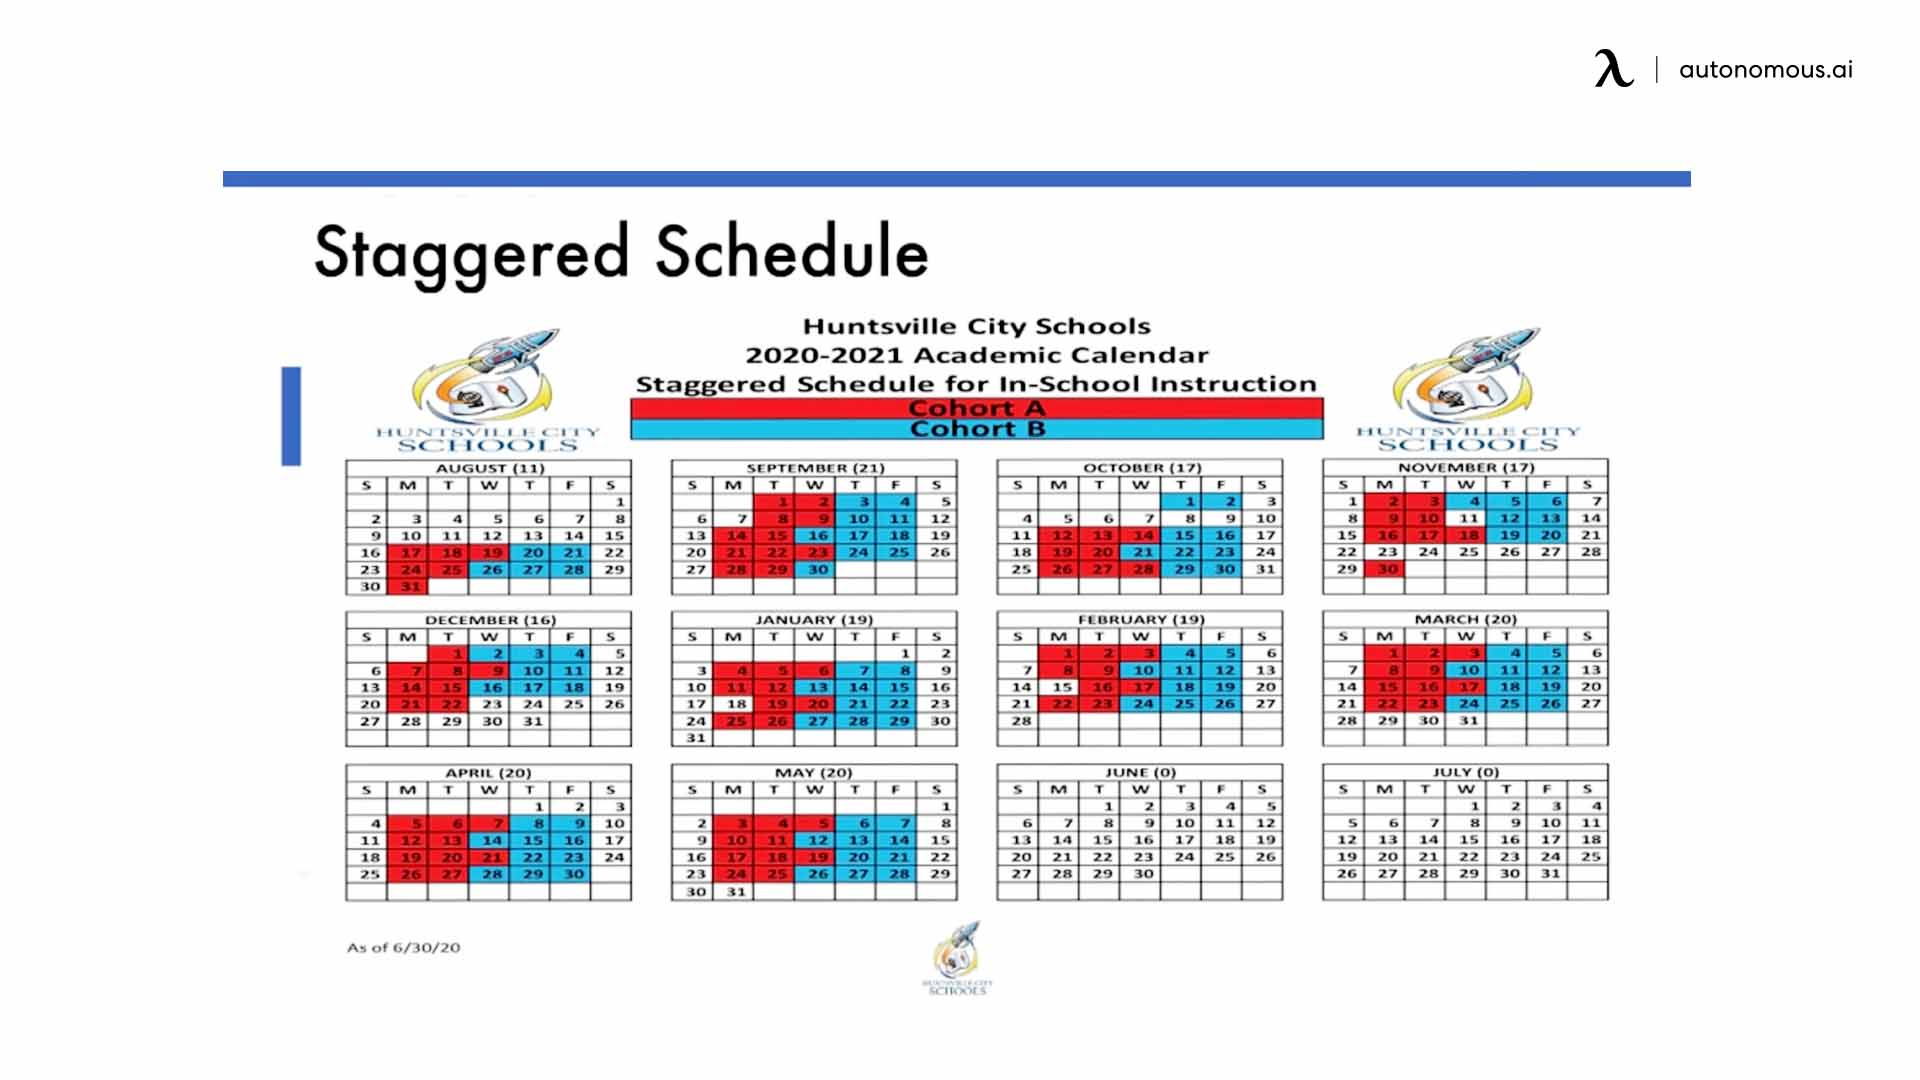 Staggered Schedule